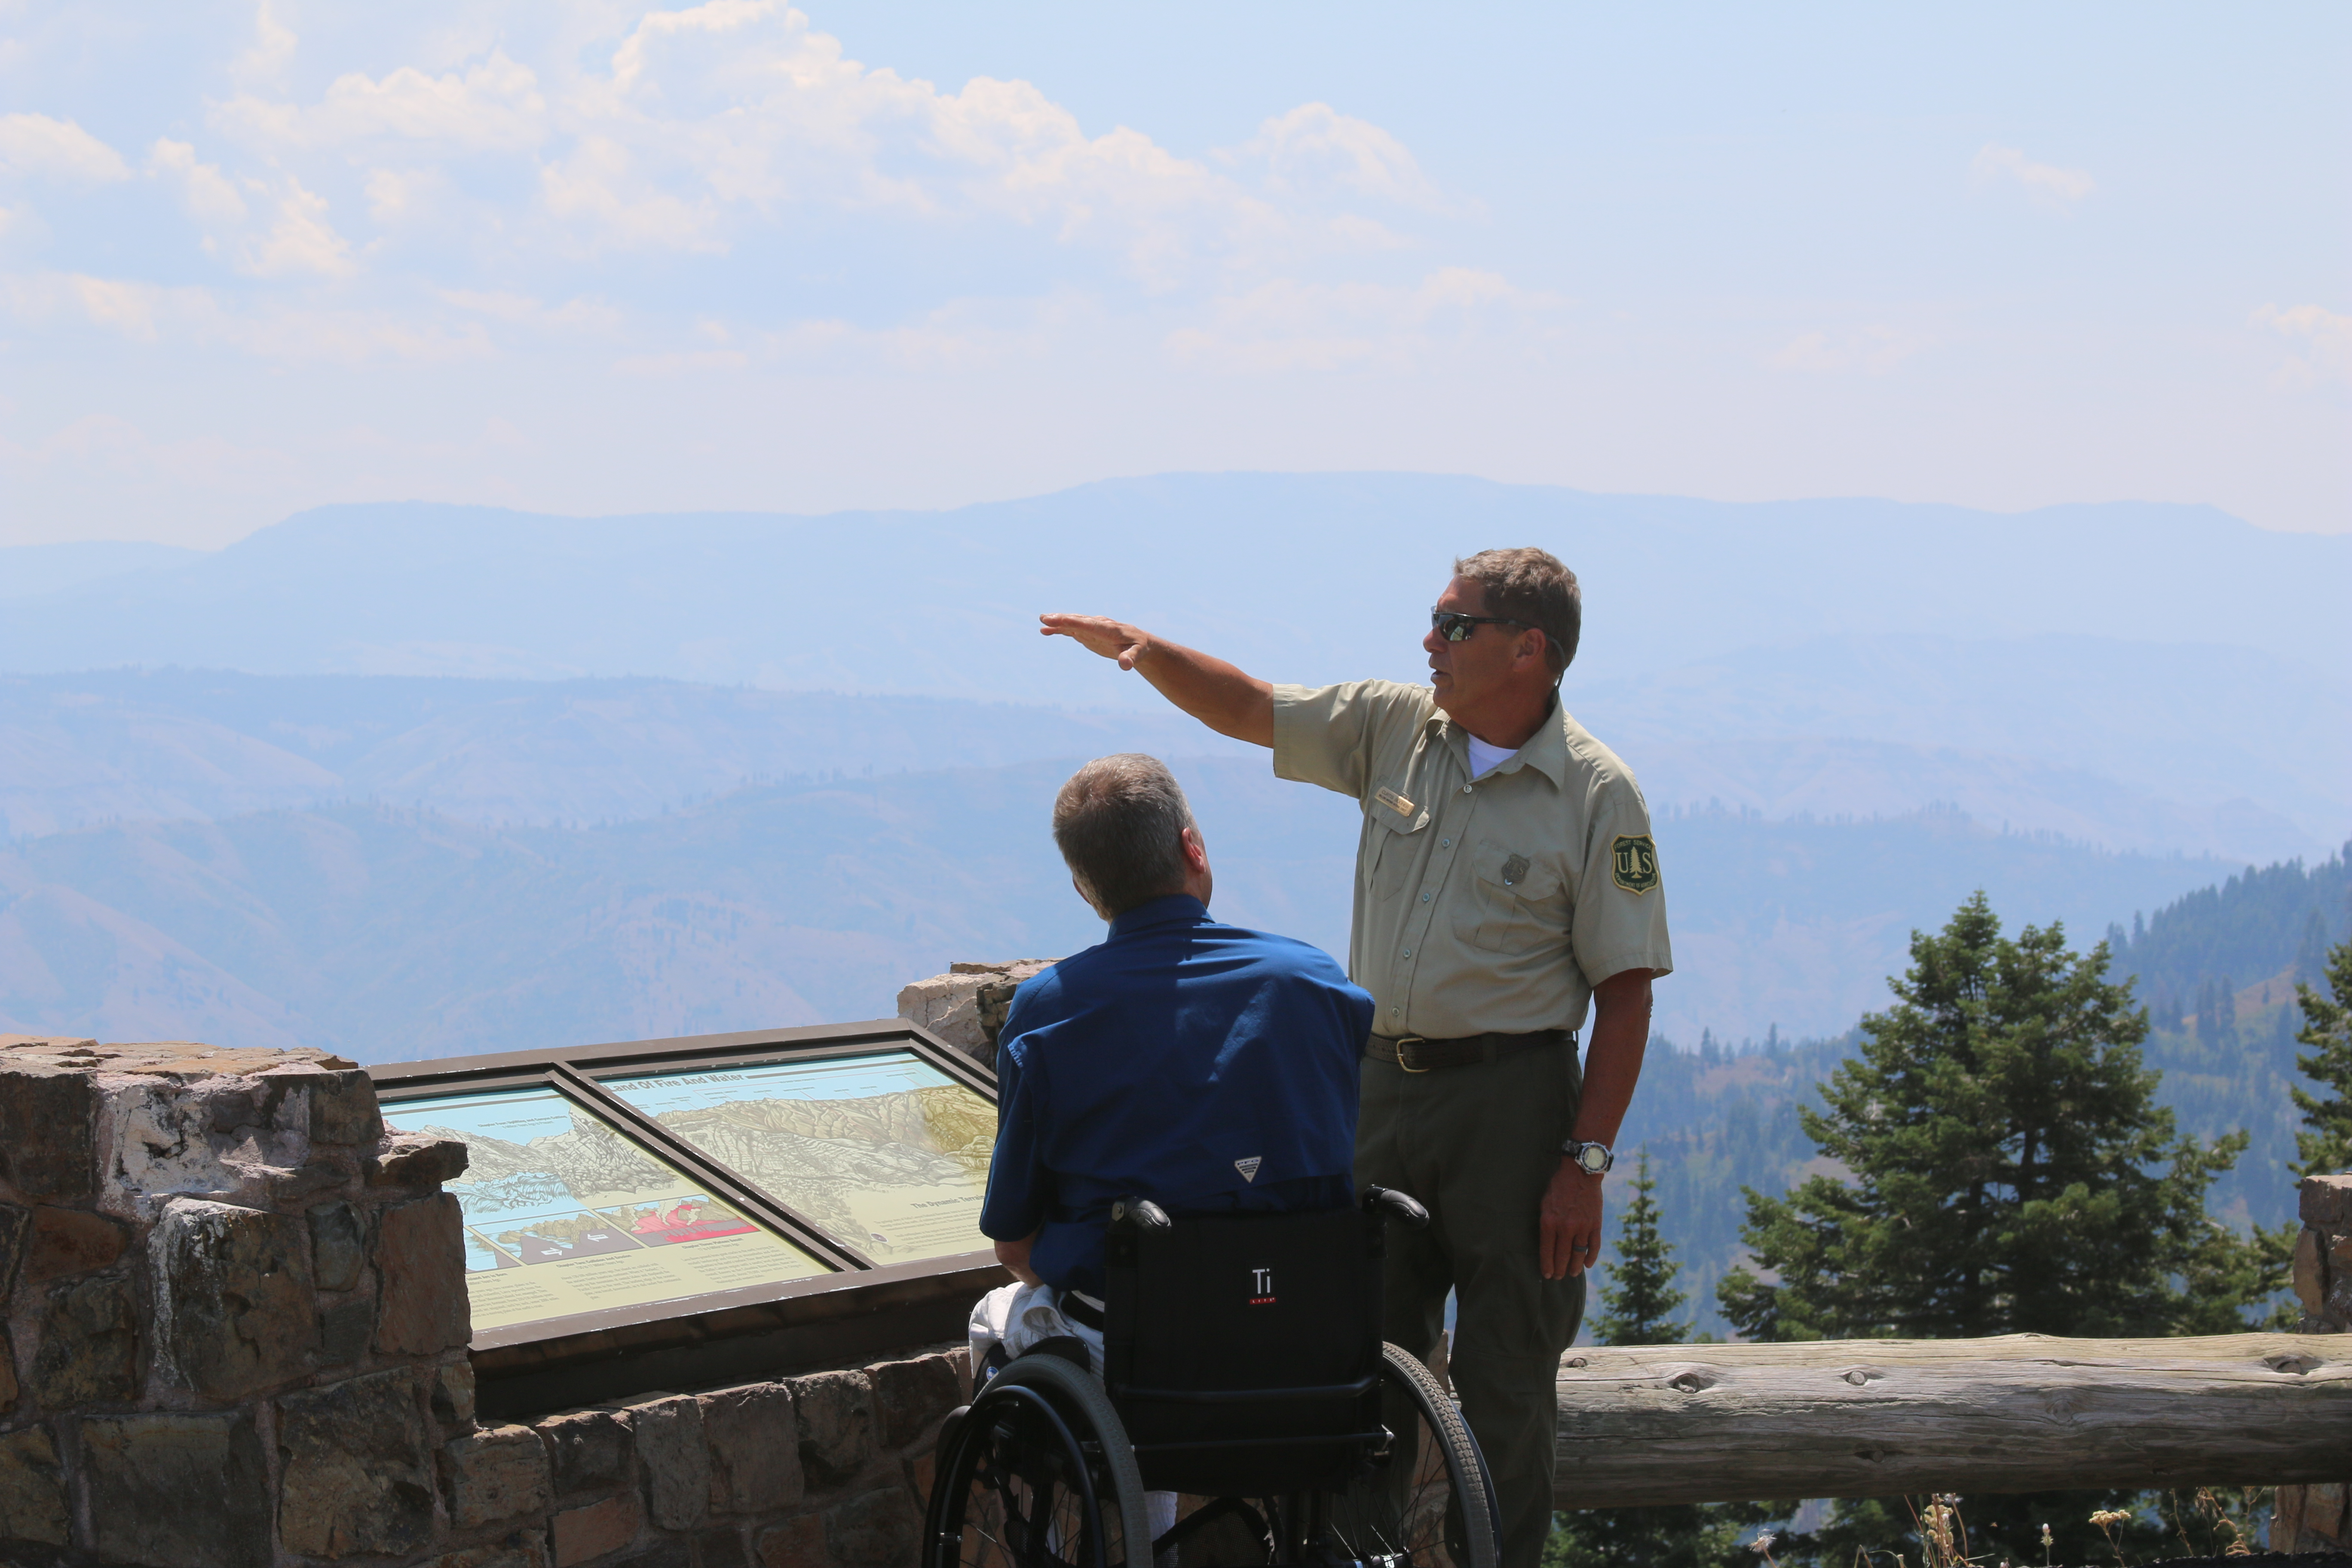 Forest Service employee discussing the forest with public